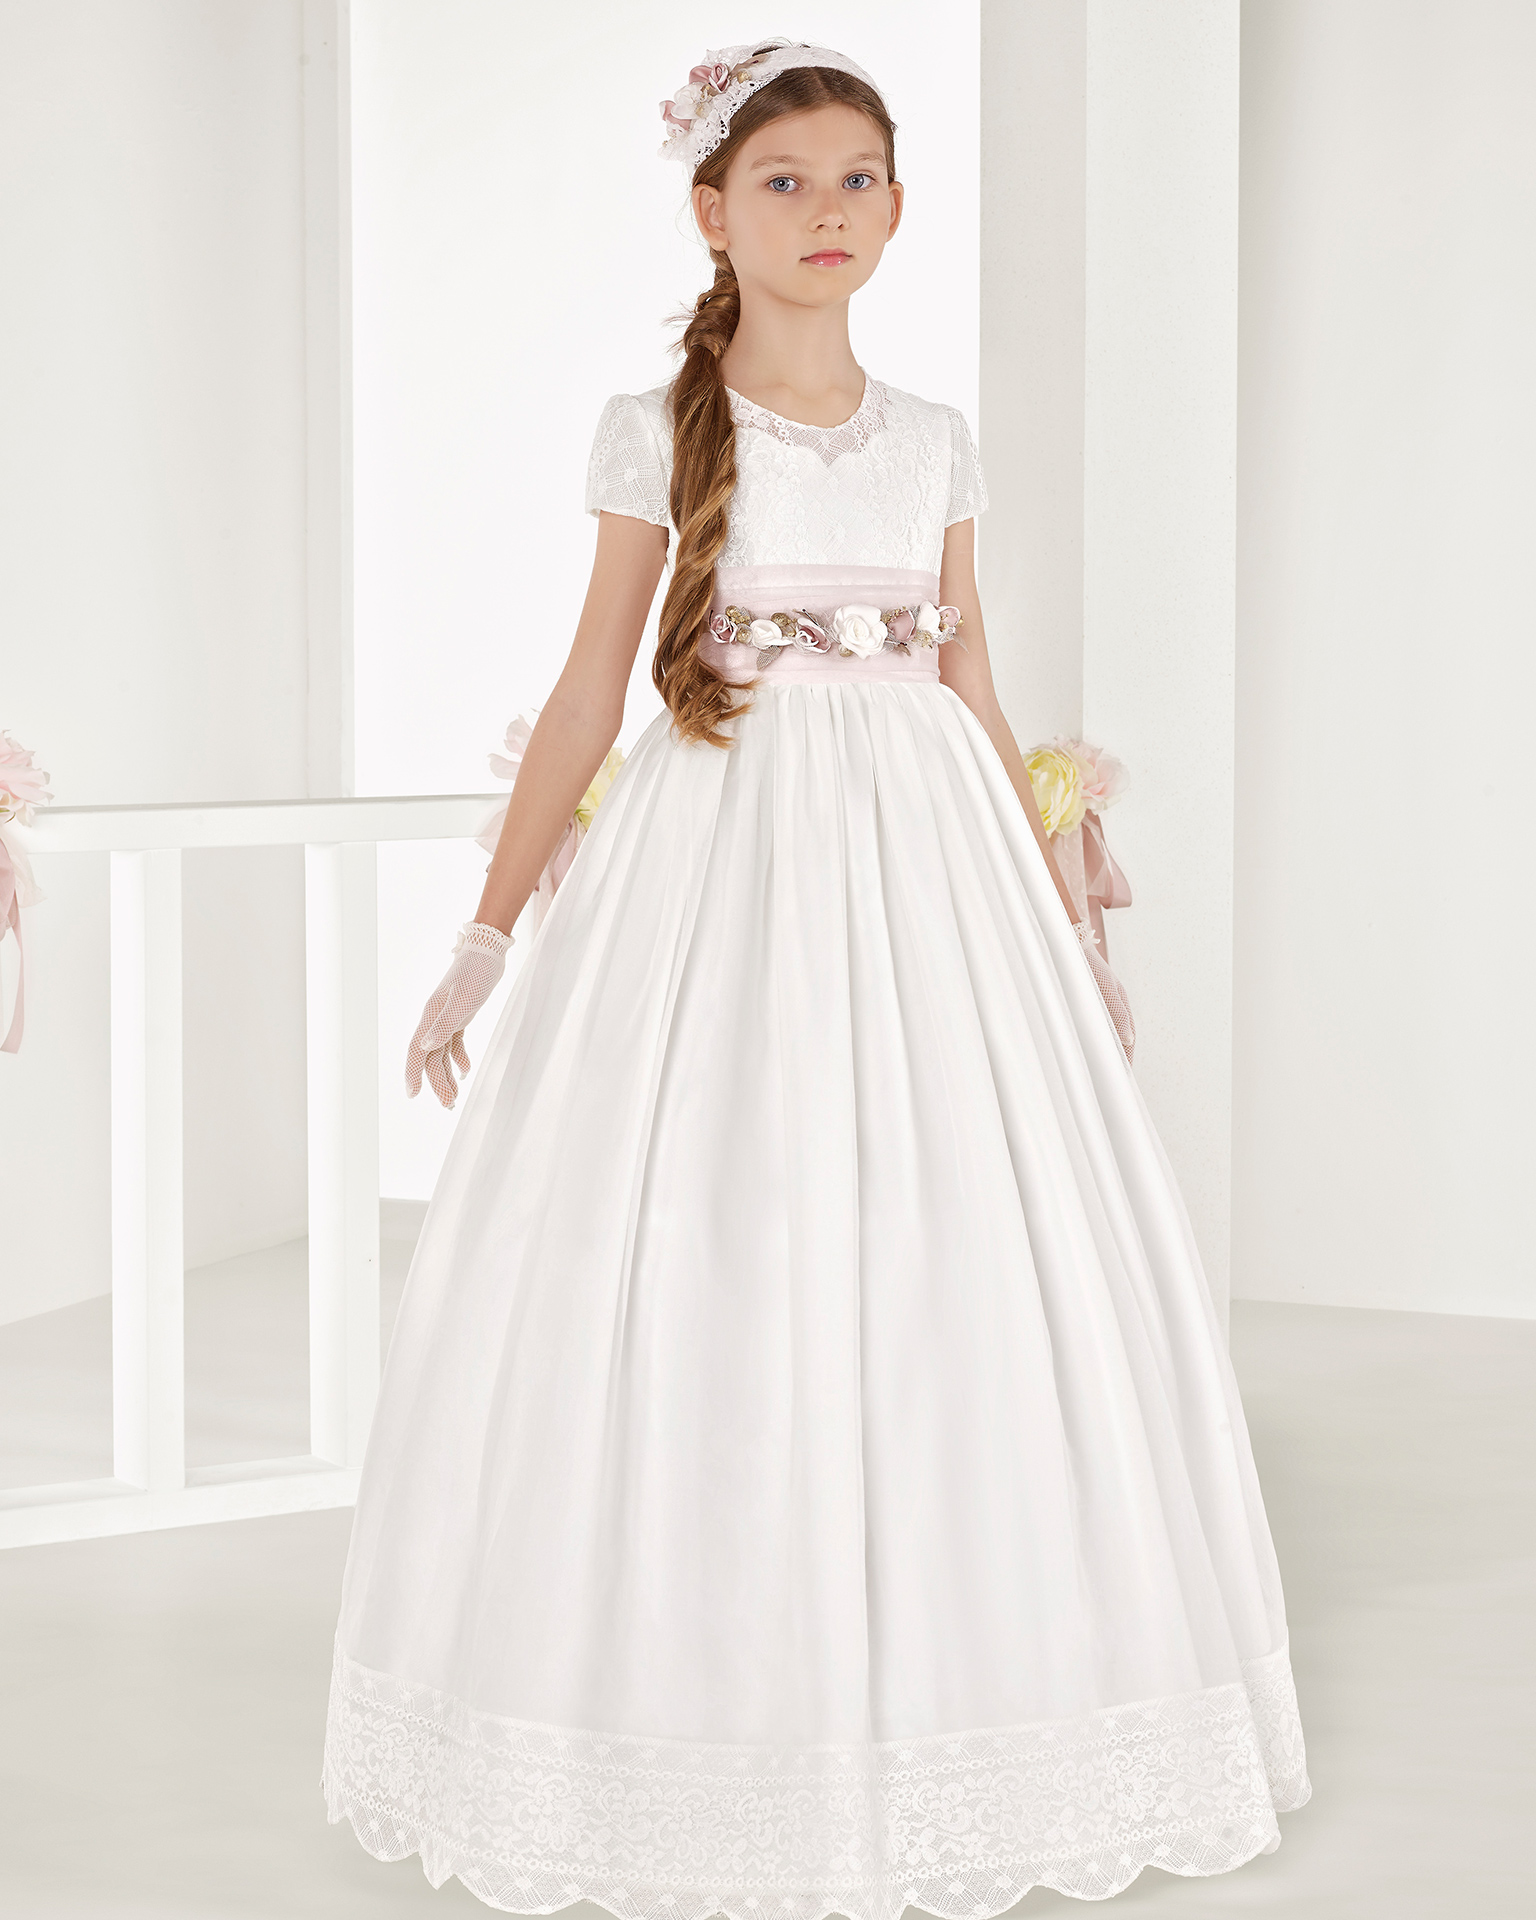 Ballgown-style striped organza First Communion or bridesmaid's dress with empire waist, in natural. 2018 AIRE COMUNION Collection.